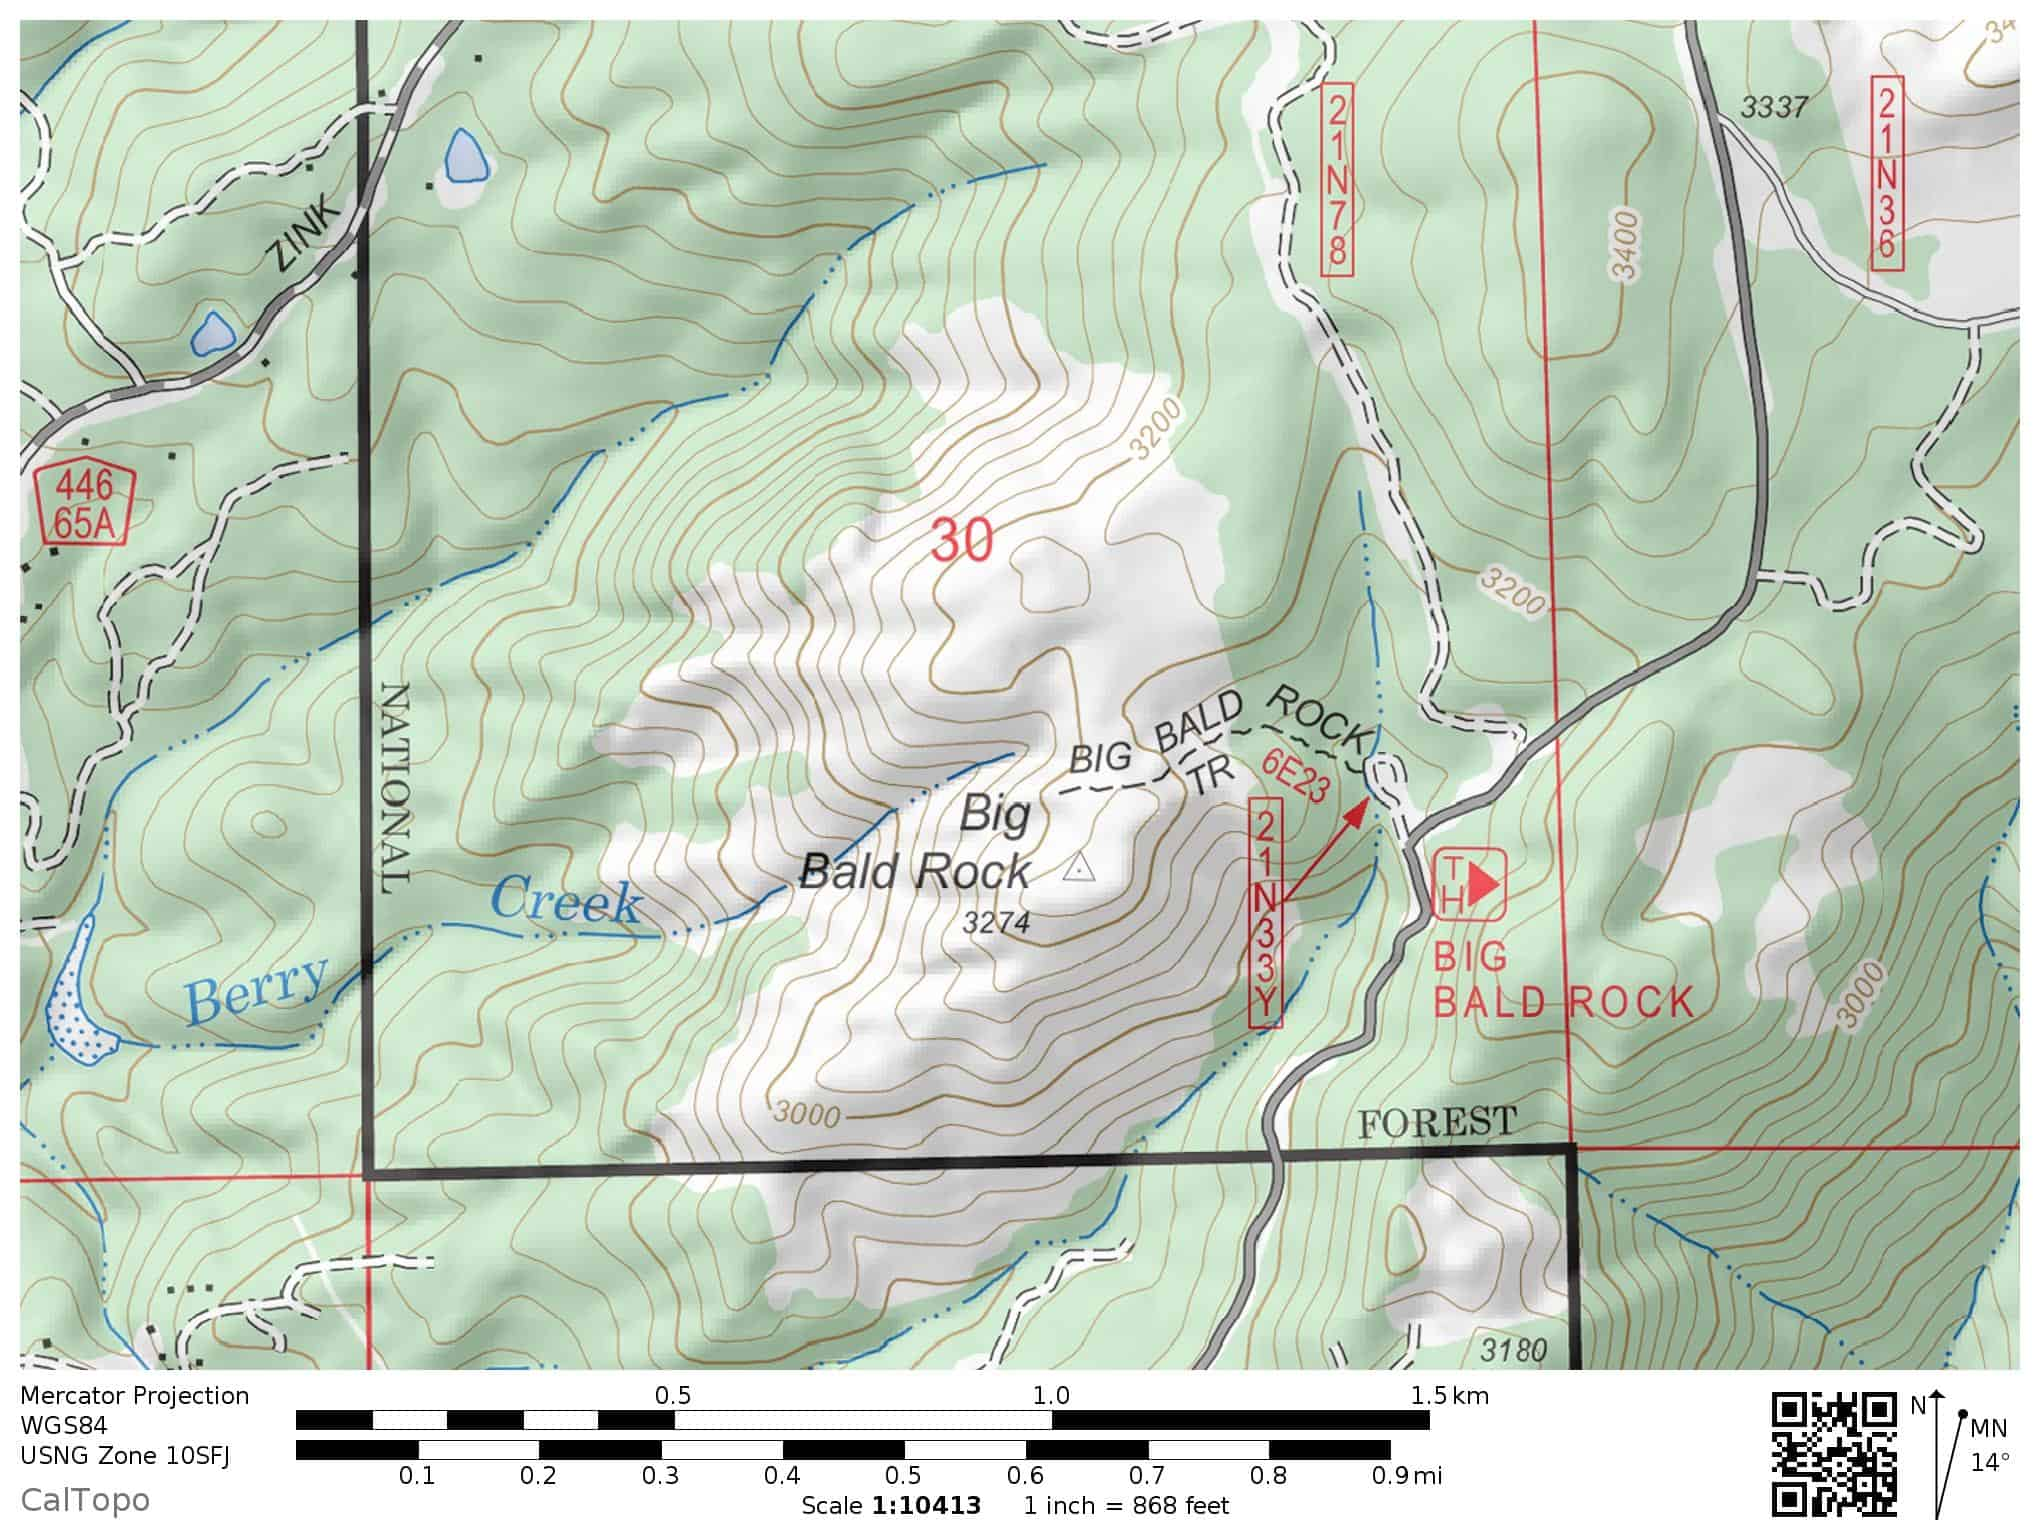 Big Bald Rock Trail topographic map for hikers. Big Bald Rock is on the Feather River Ranger District of Plumas National Forest in California.